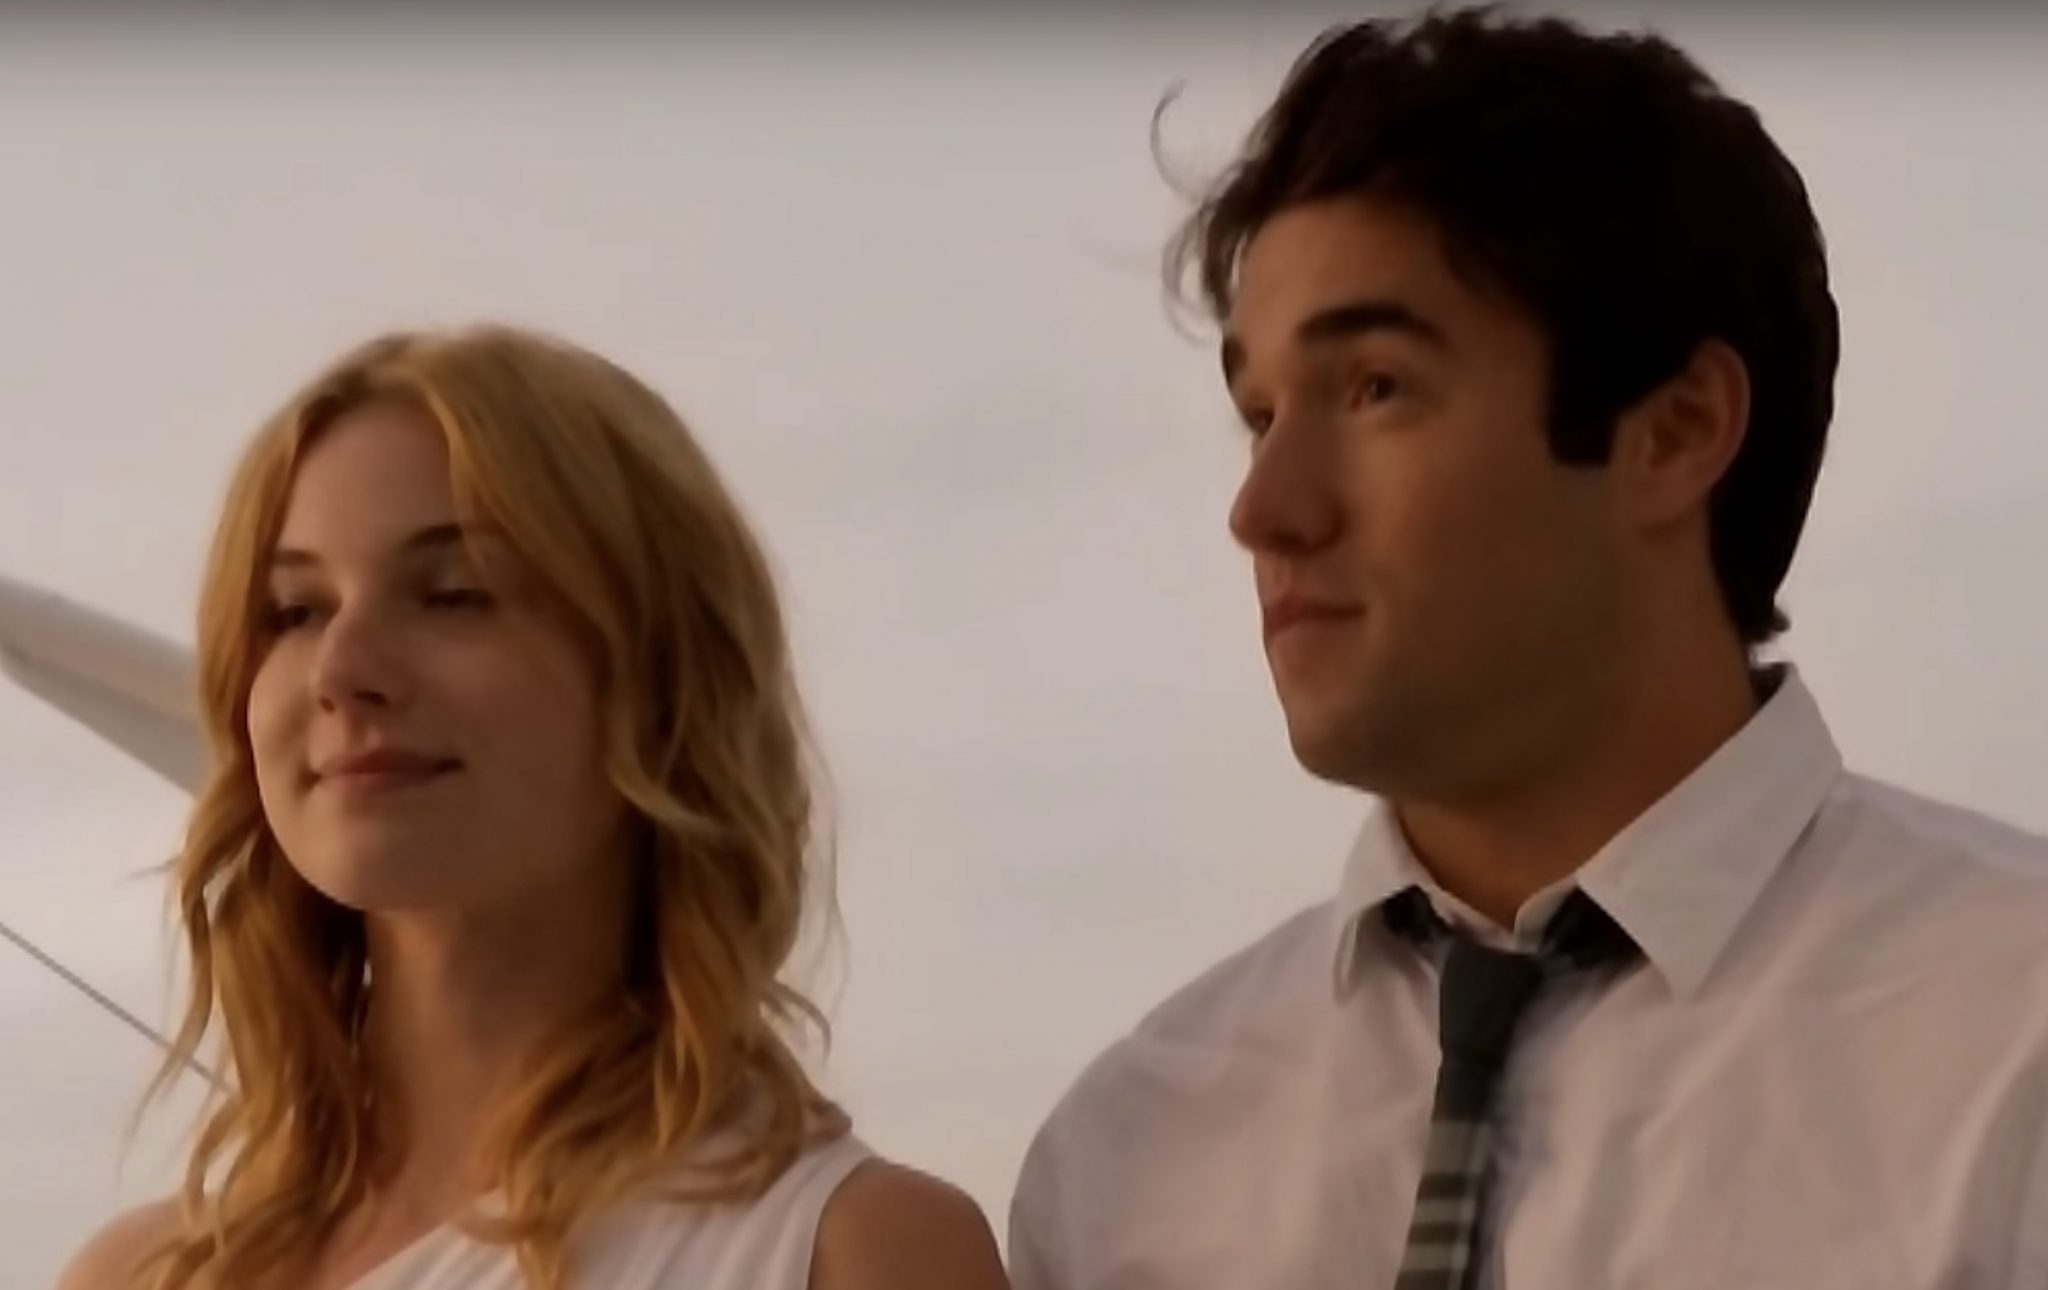 Emily VanCamp, Emily Thorne, Josh Bowman, Daniel Grayson-https://www.youtube.com/watch?v=R1C8ygebkng